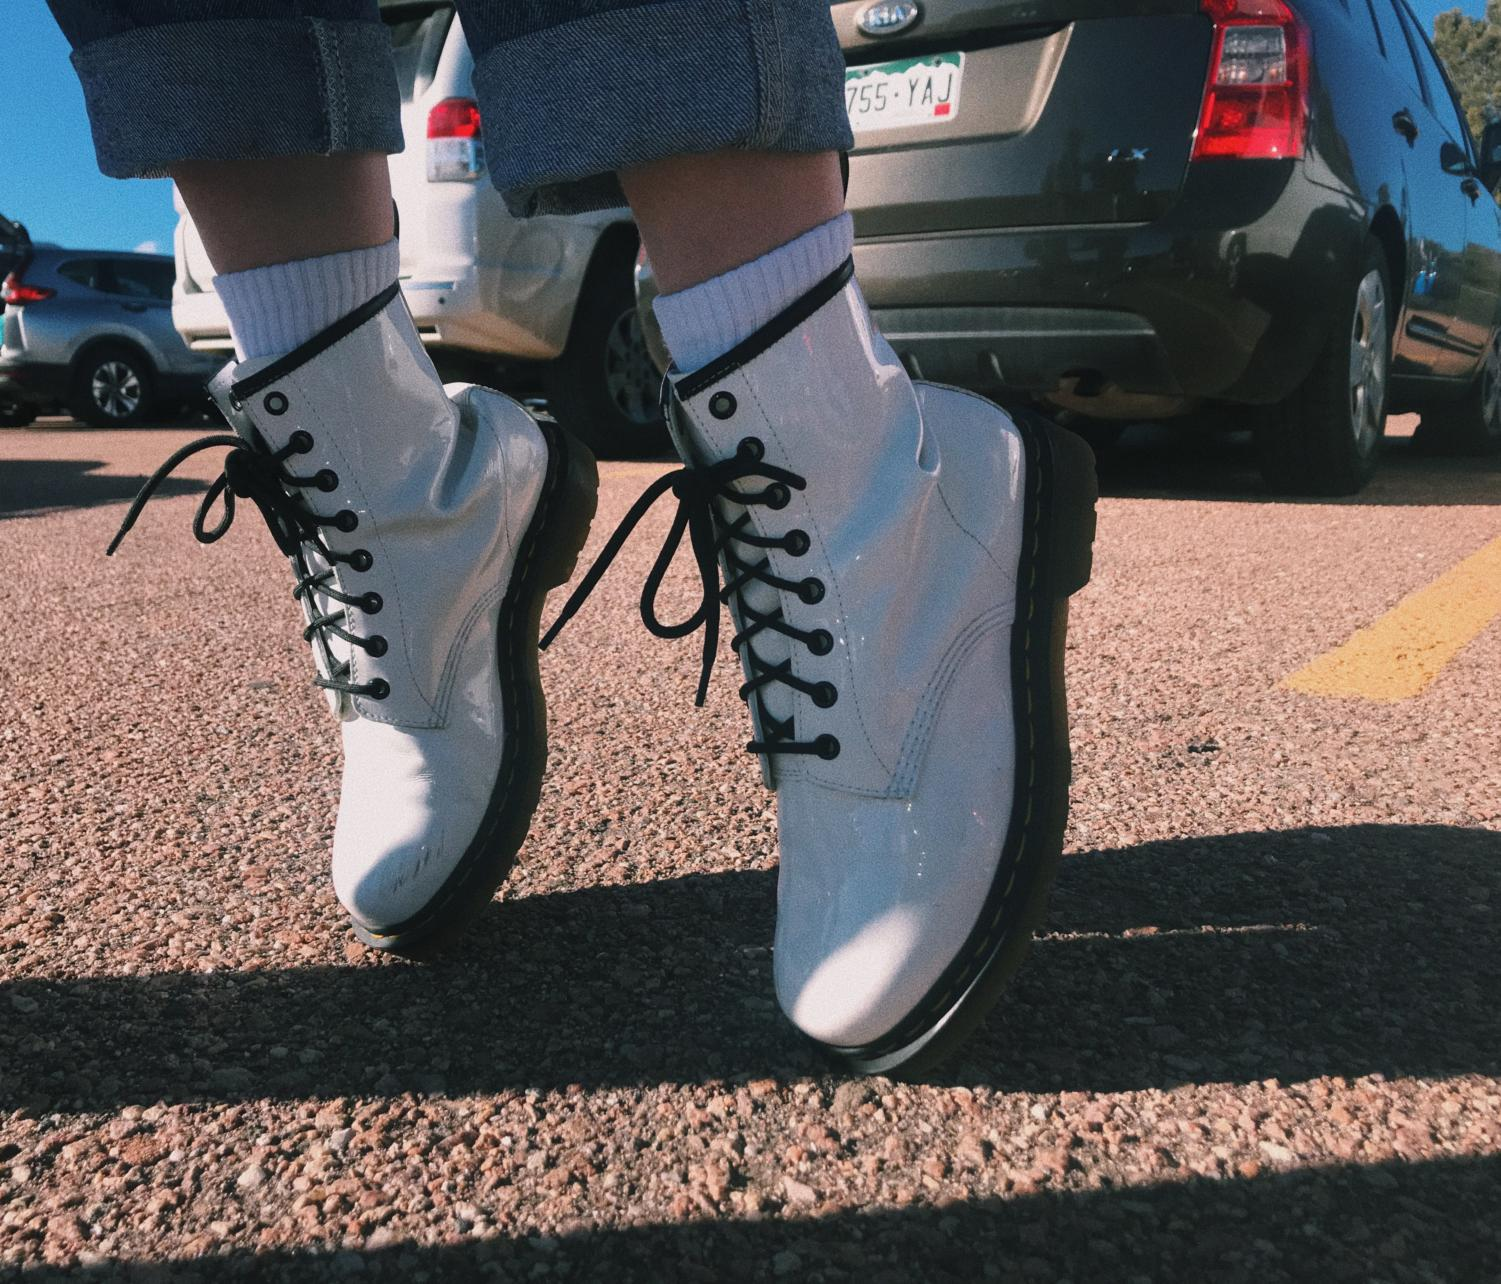 Sohomore Pearl Yocum sports her $115 White Doc Martens with some signature Michael Jackson poses